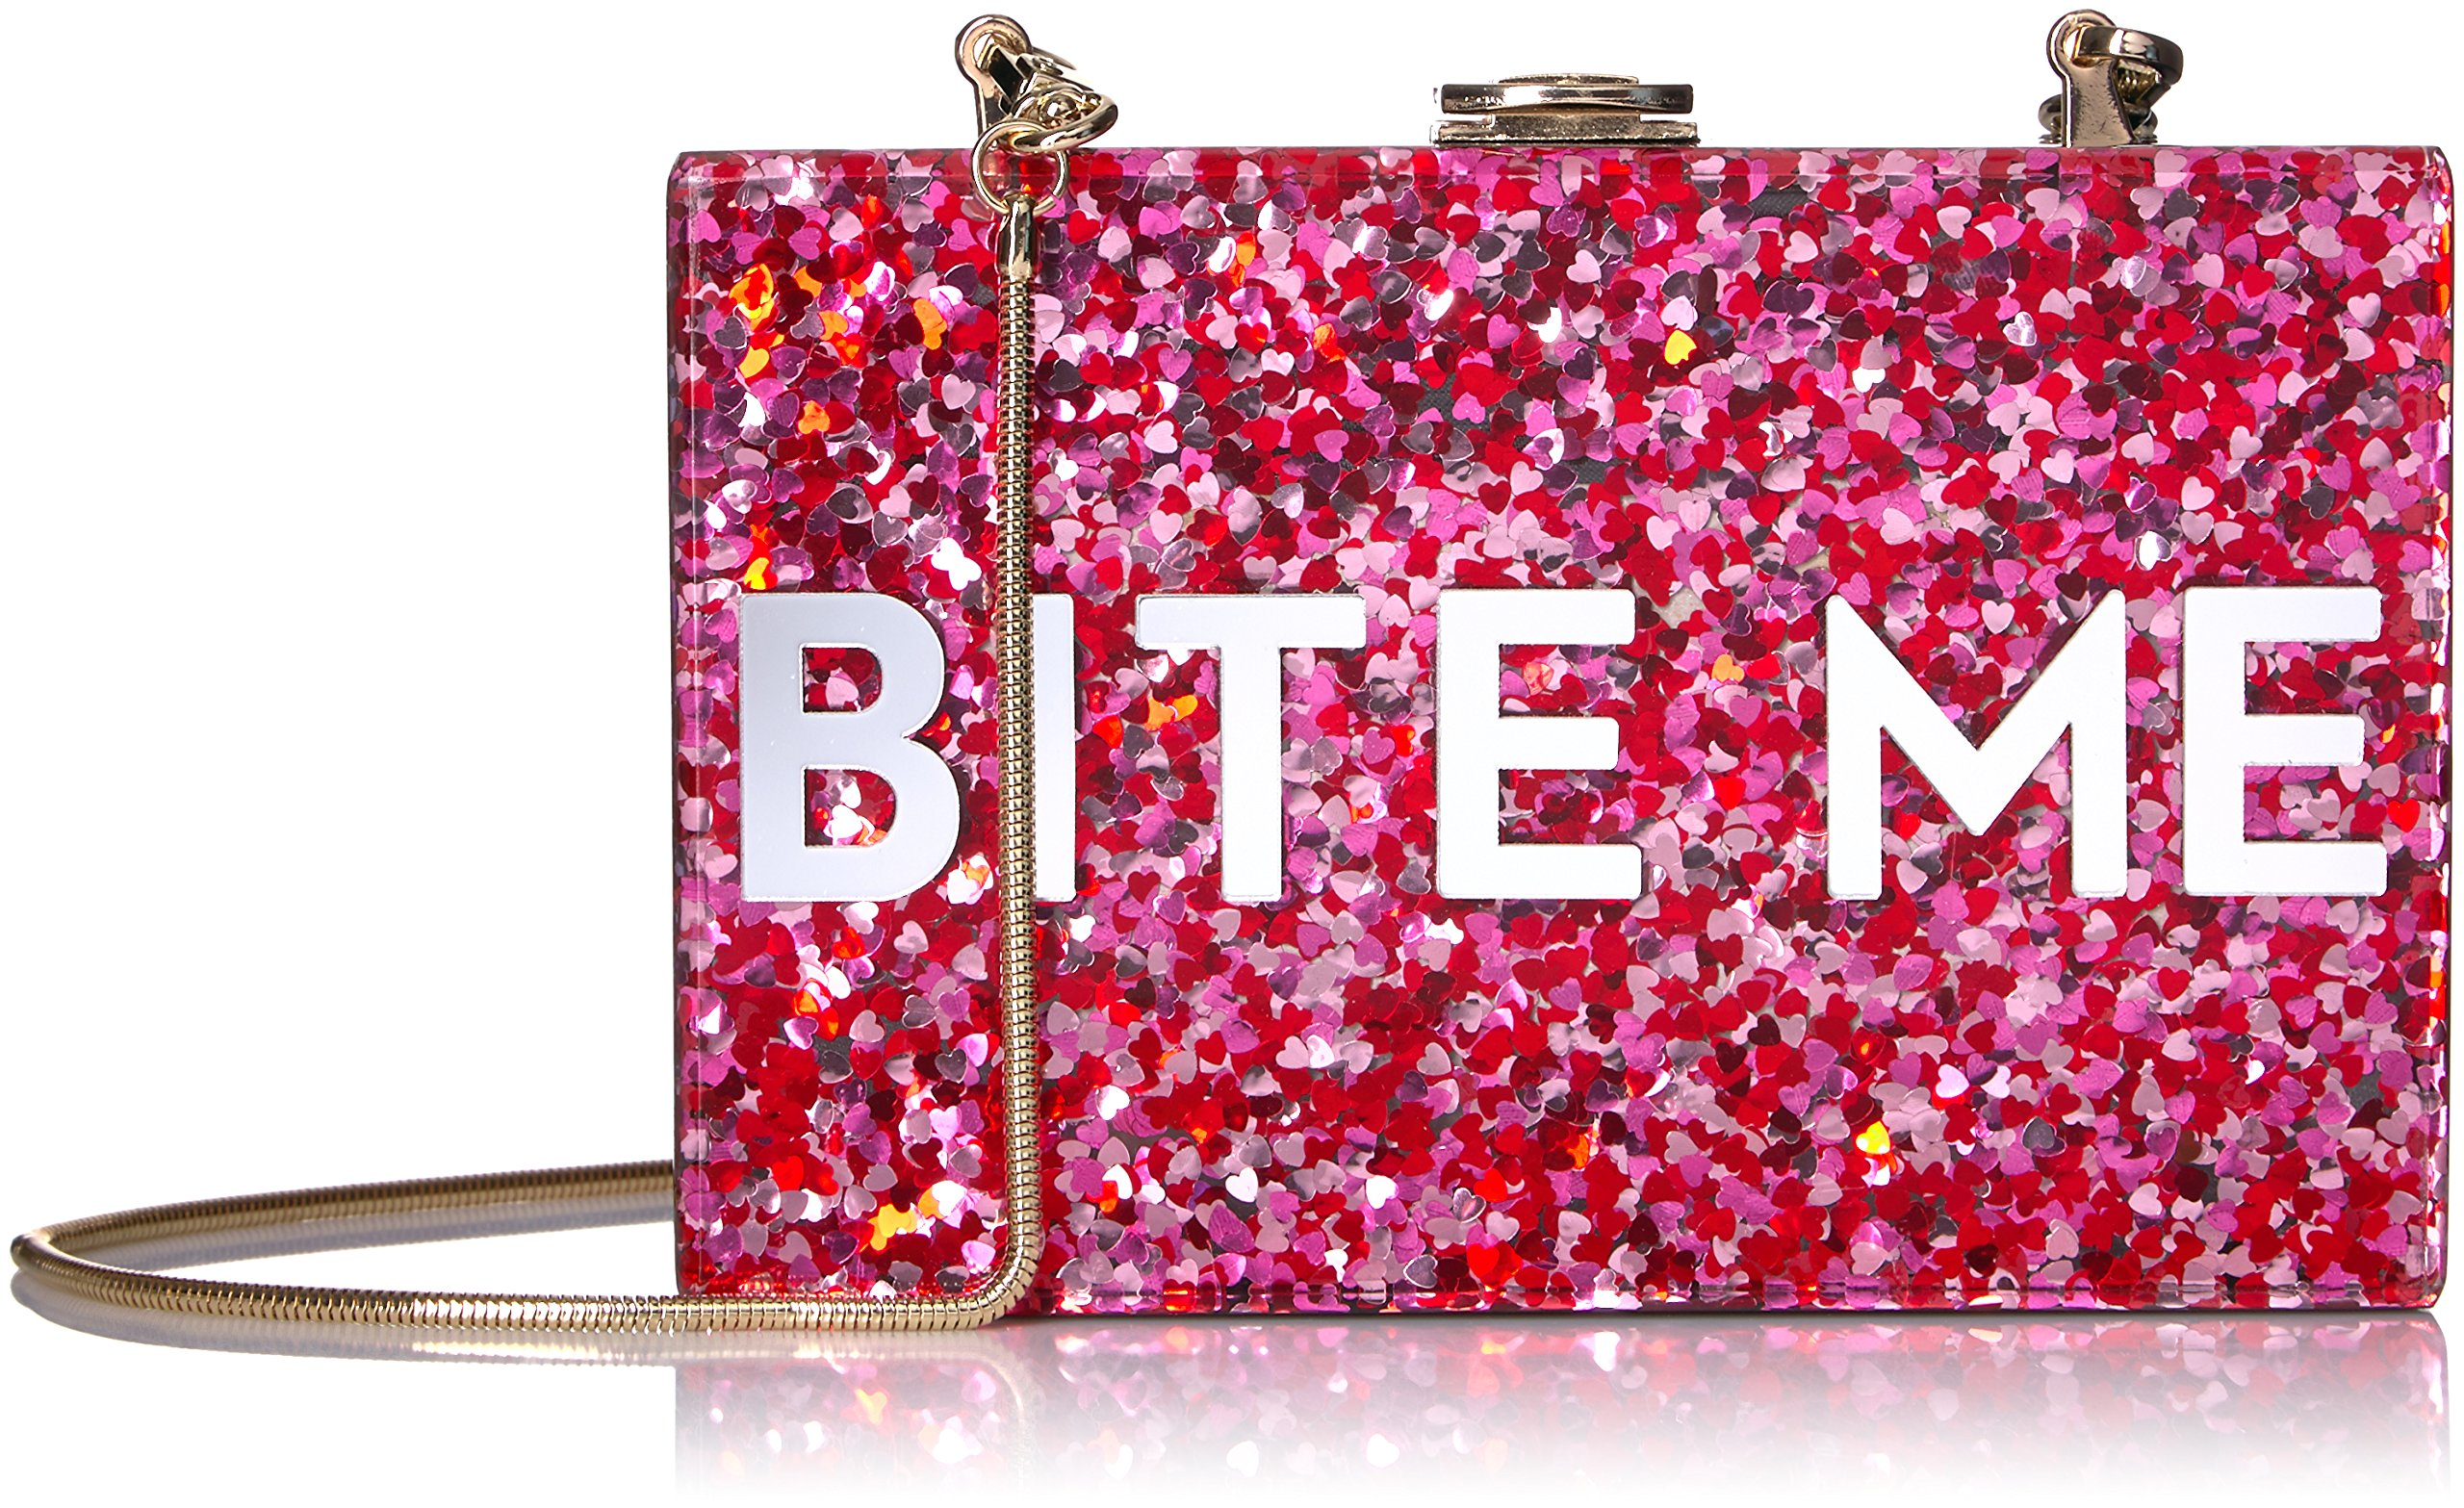 MILLY Glitter Bite Me Box Clutch, Multi by MILLY